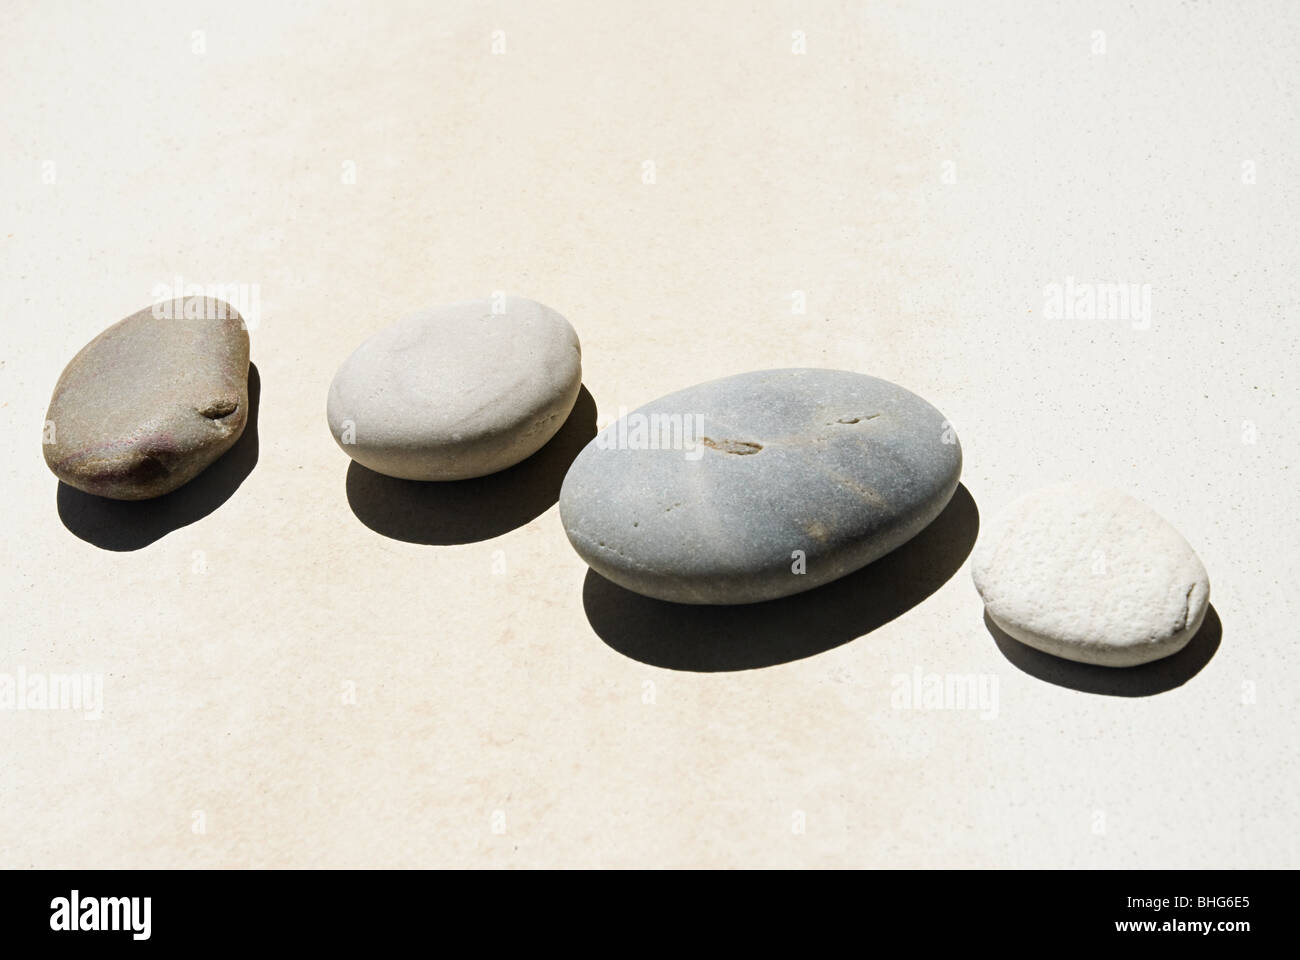 Pebbles - Stock Image